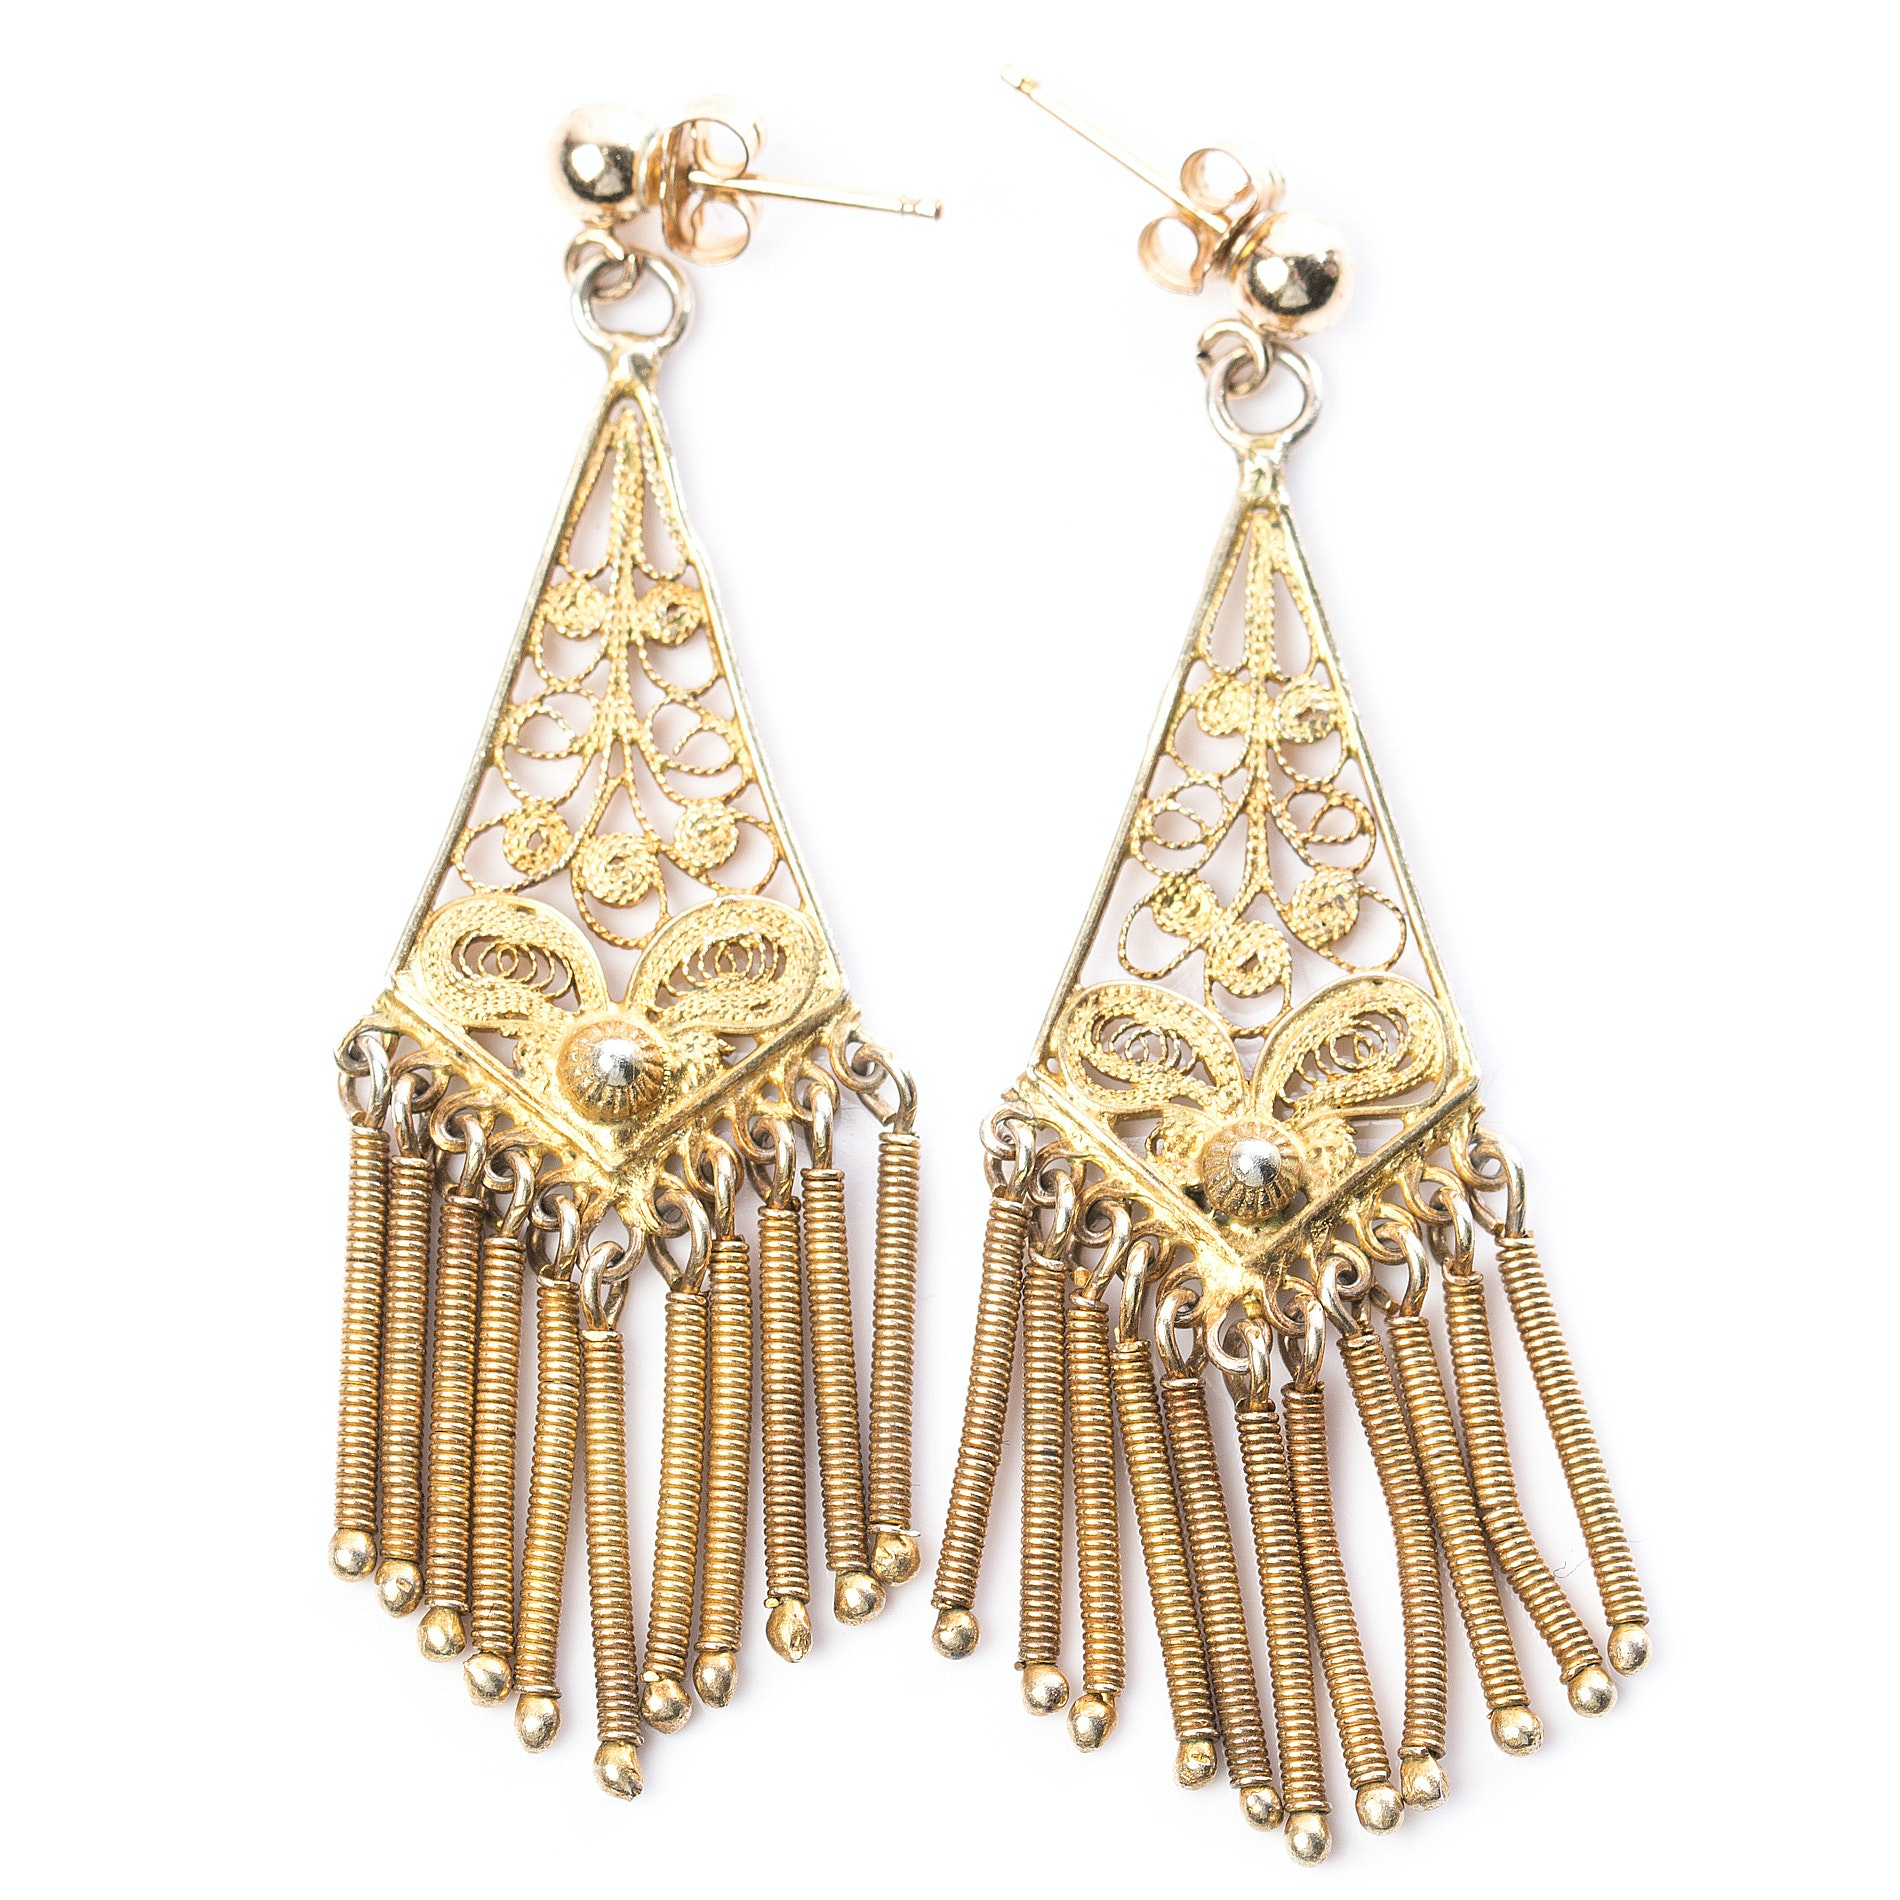 Vintage Gold Plated 800 Silver Middle-Eastern Style Earrings